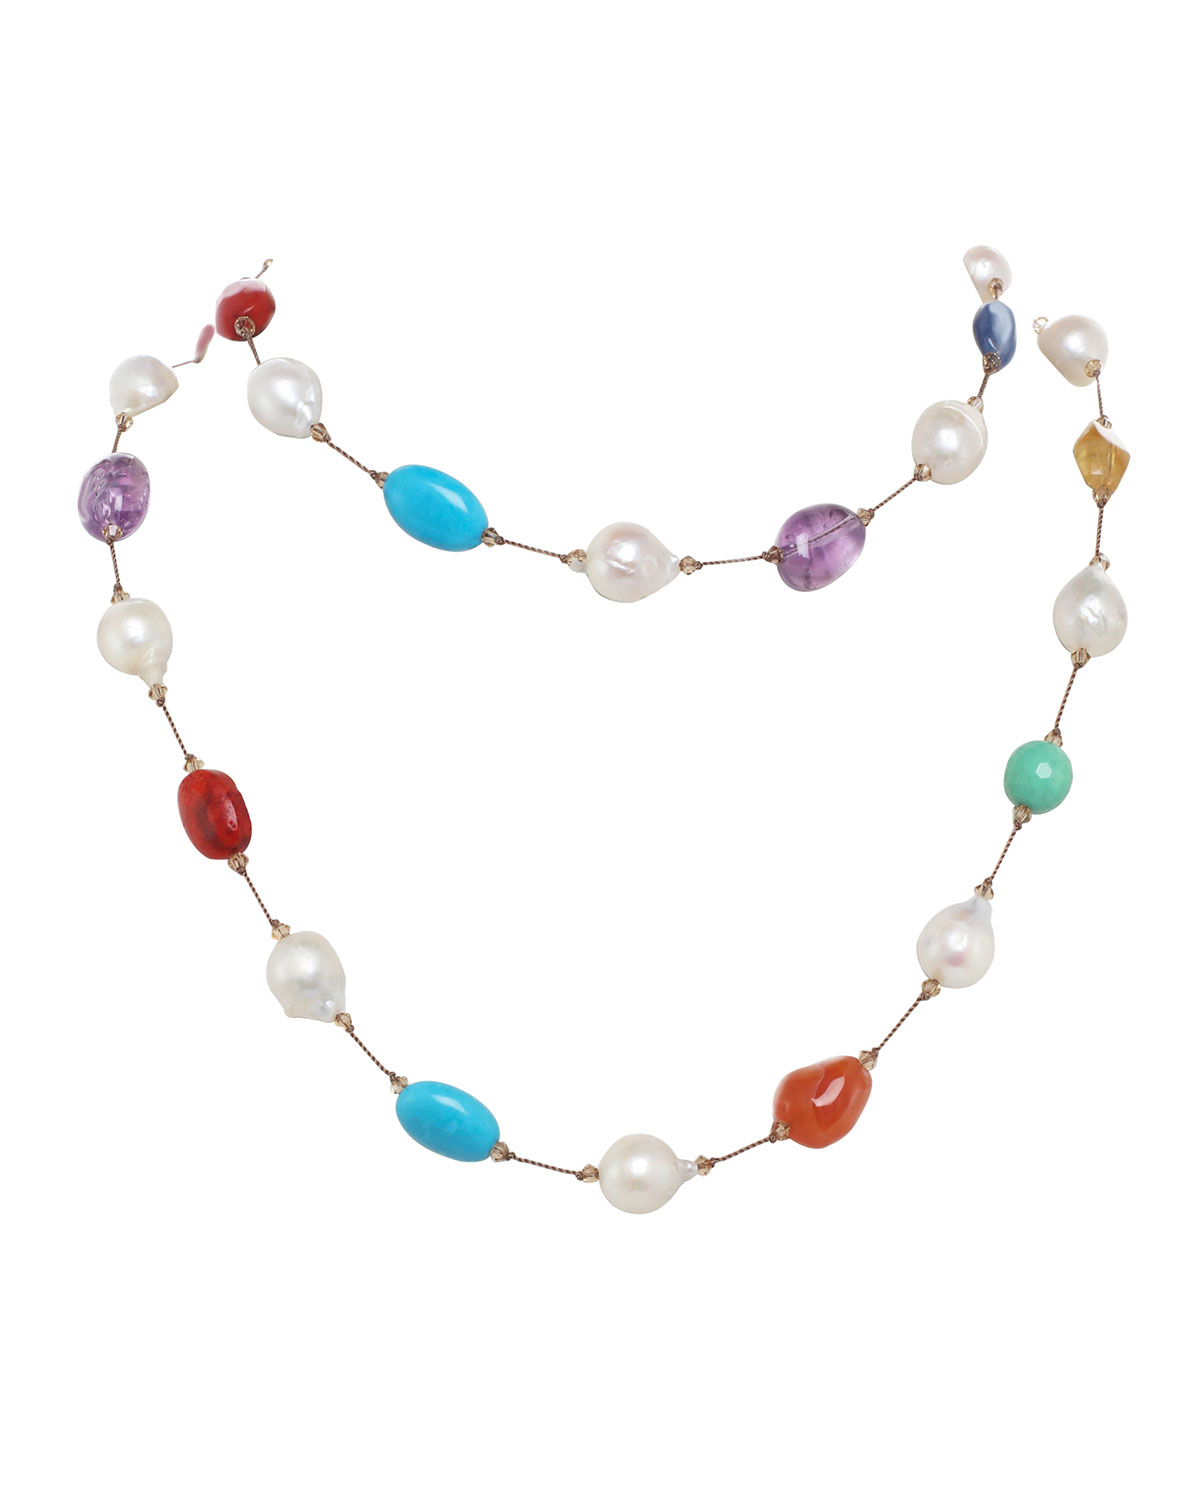 Small Multi-Stone and Baroque Pearl Necklace with Swarovski Crystal and Sterling Silver Toggle